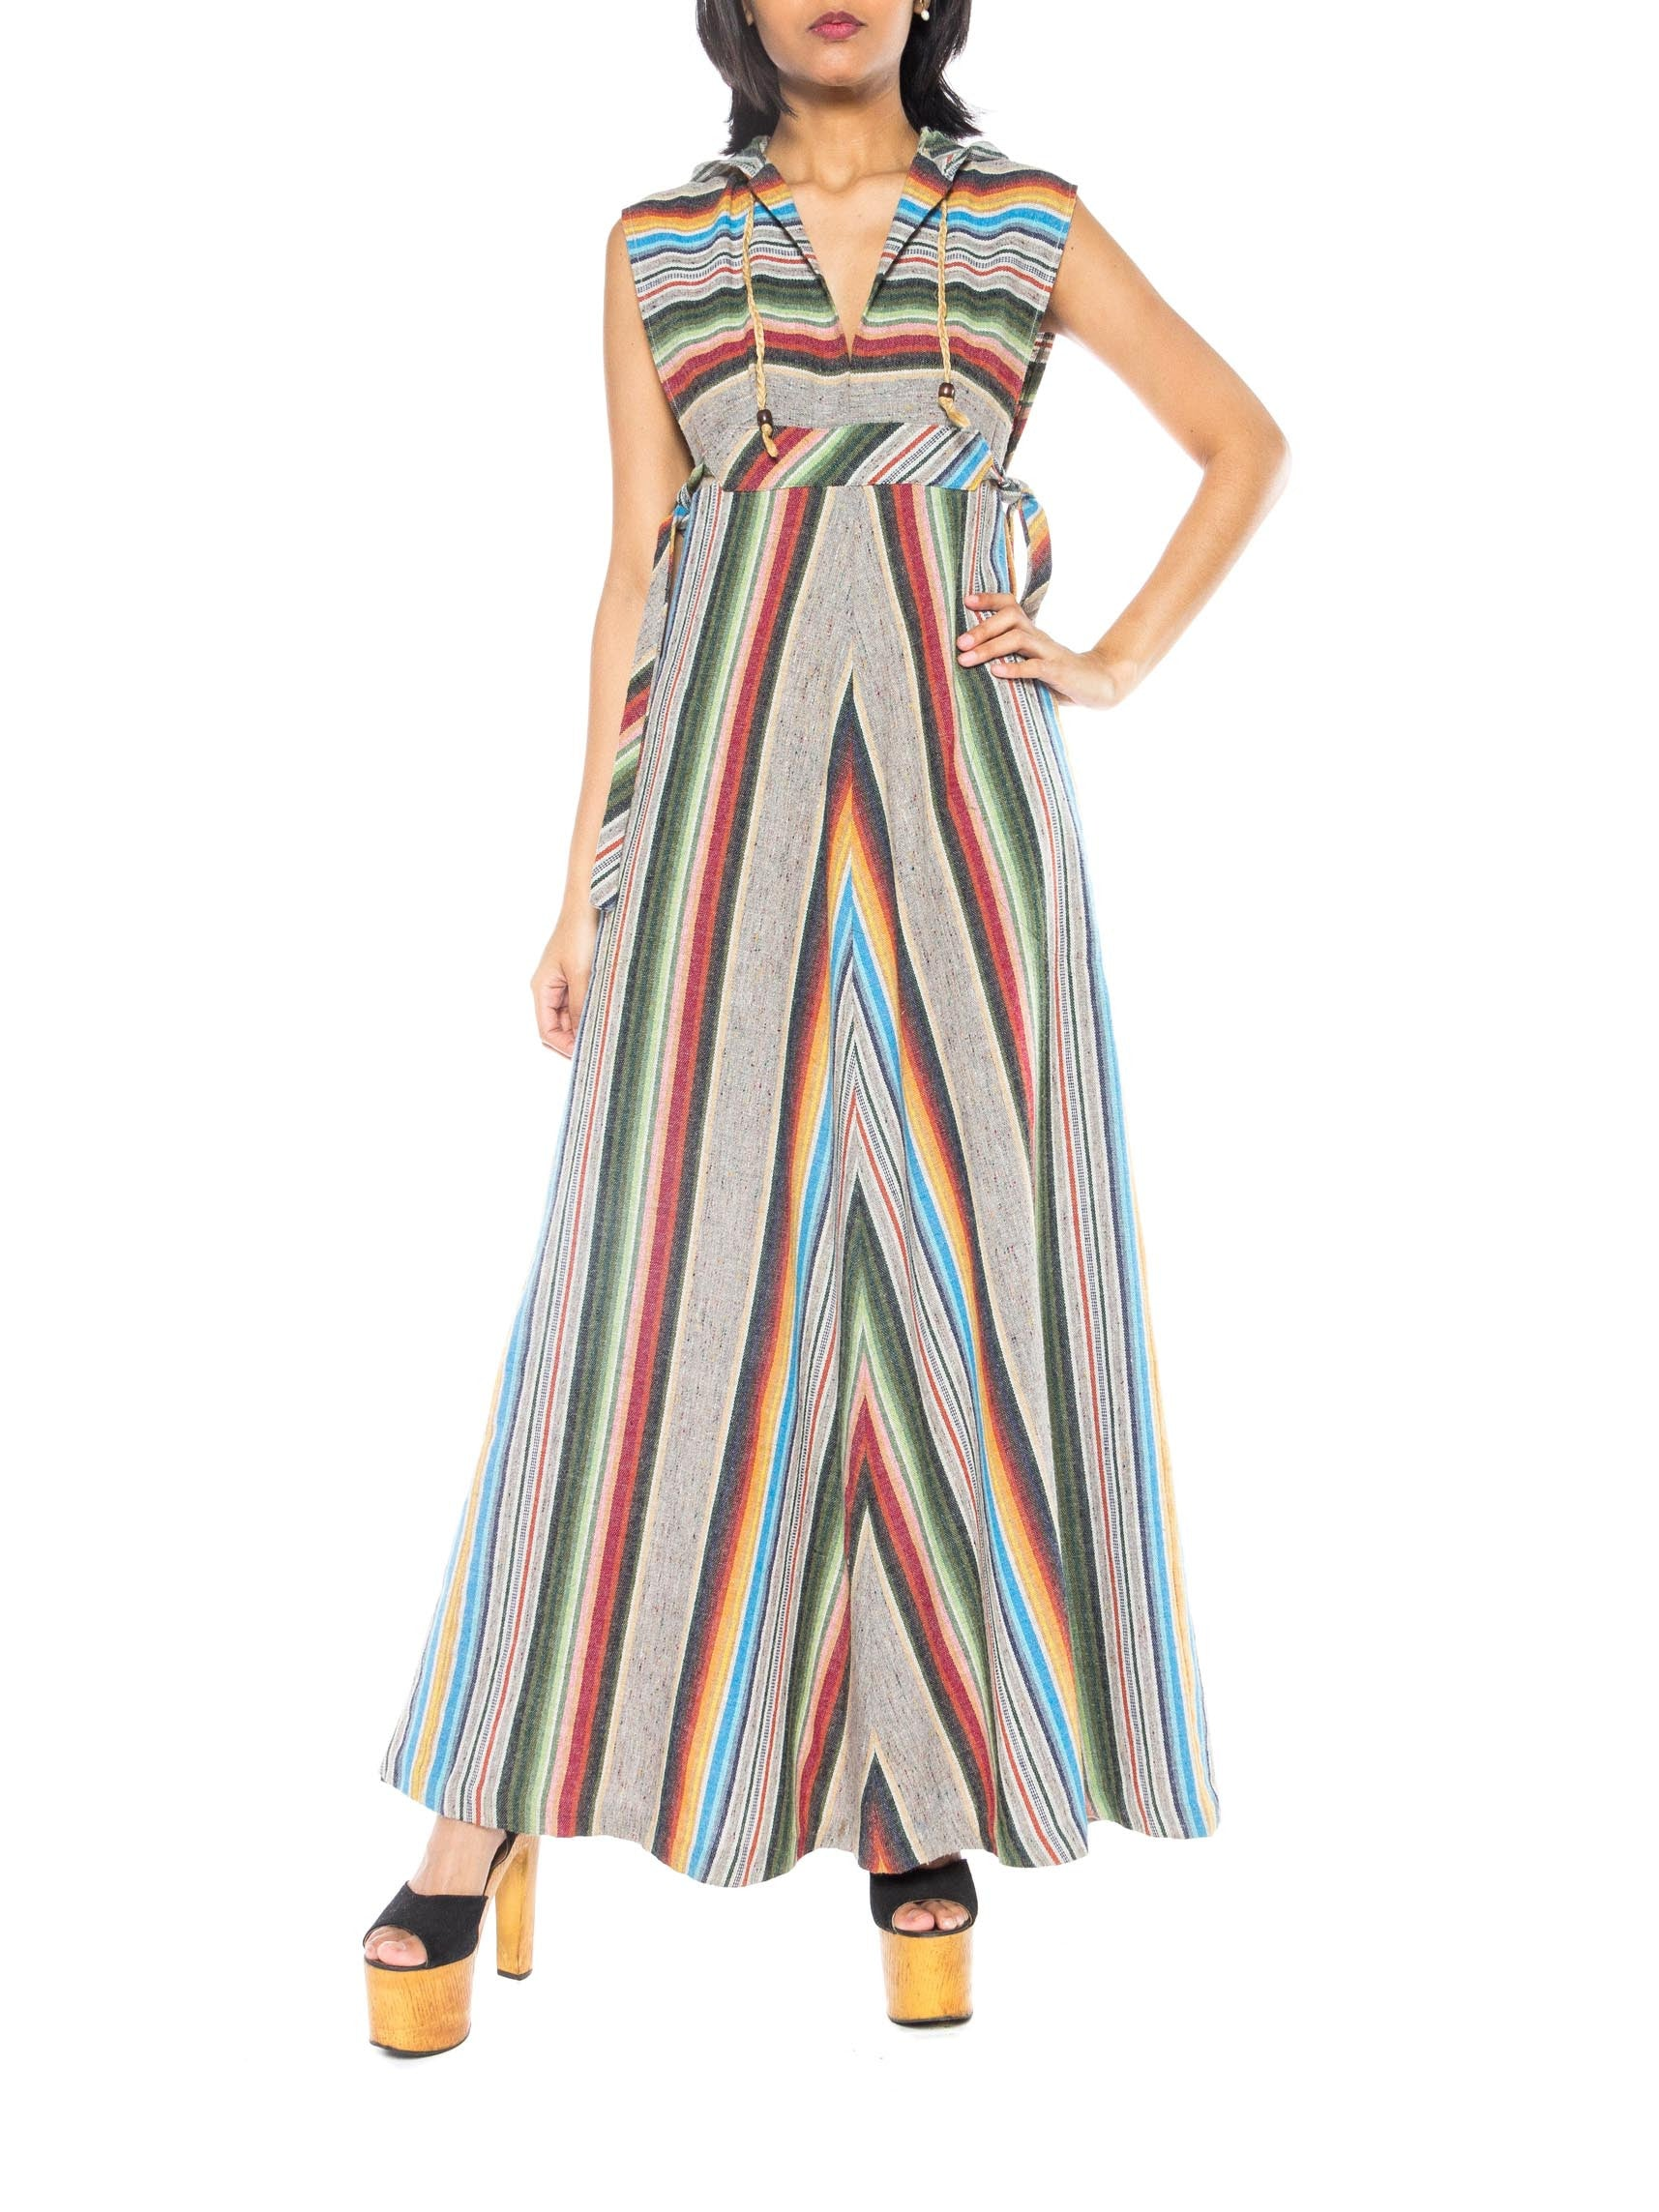 1970s Striped and Hooded Dress